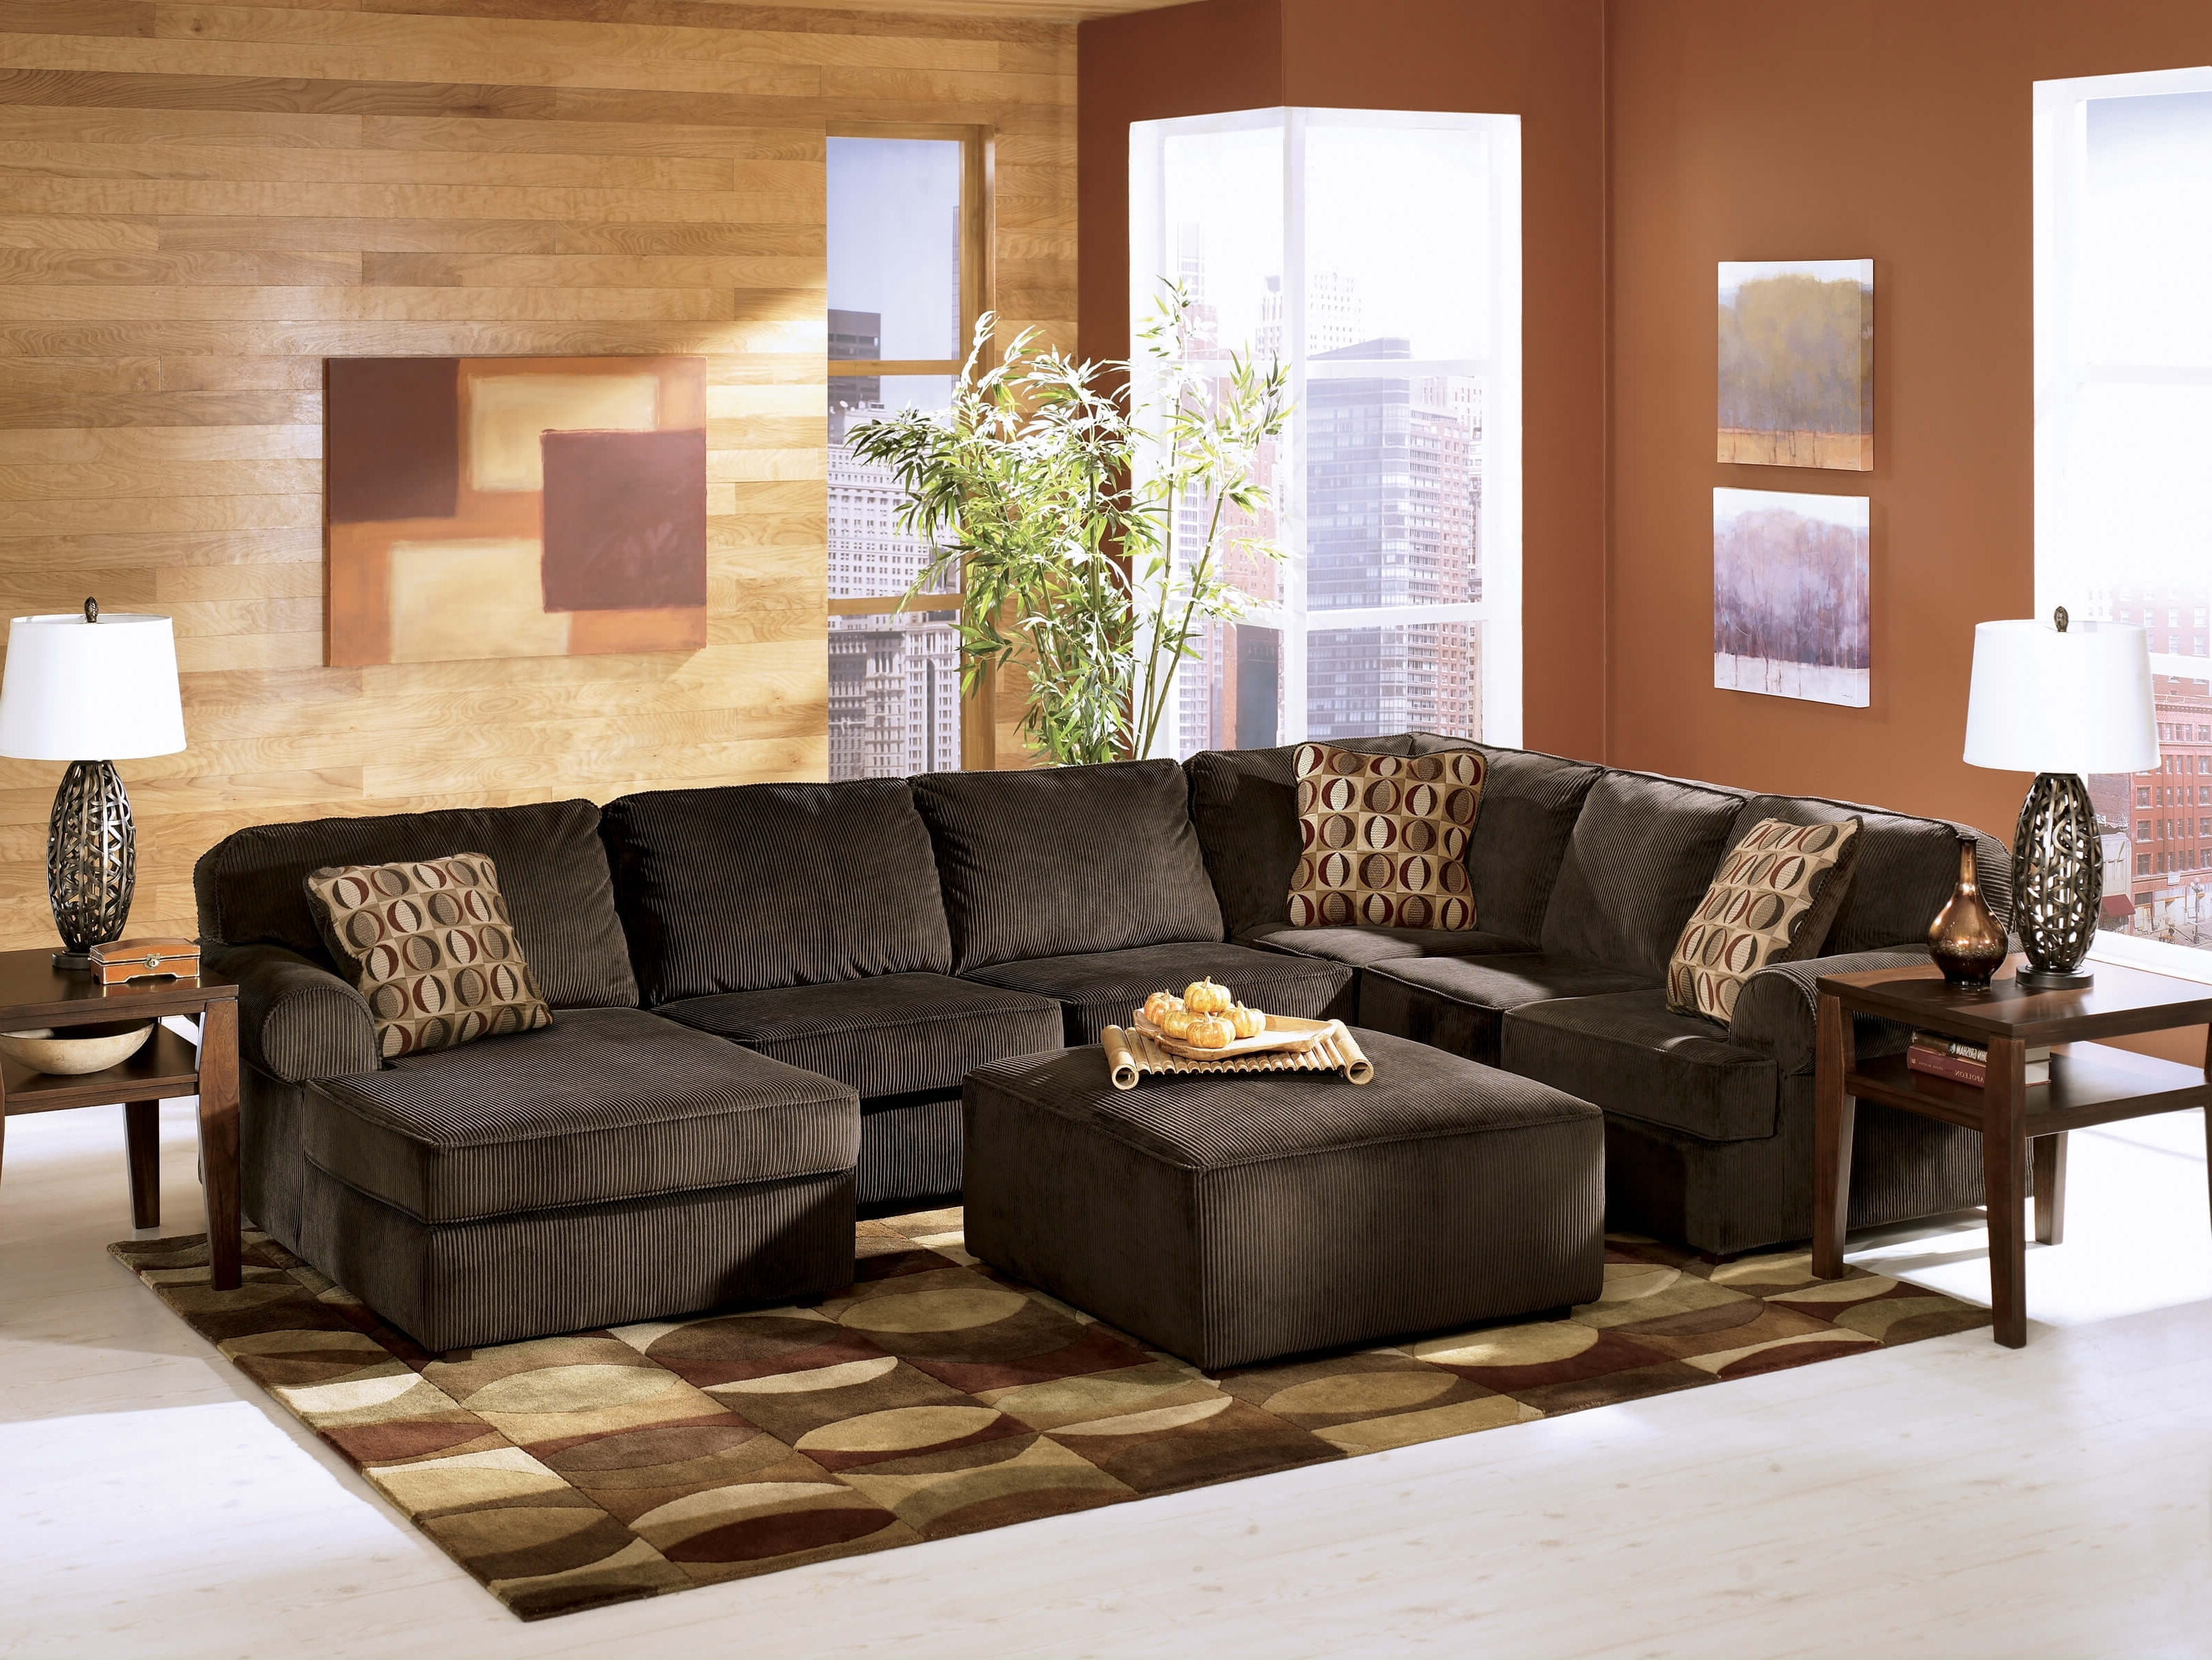 Ashley Furniture Sectional Sofa, Ashley Furniture Brown Sectional Pertaining To Trendy Sectional Sofas At Ashley Furniture (View 12 of 15)